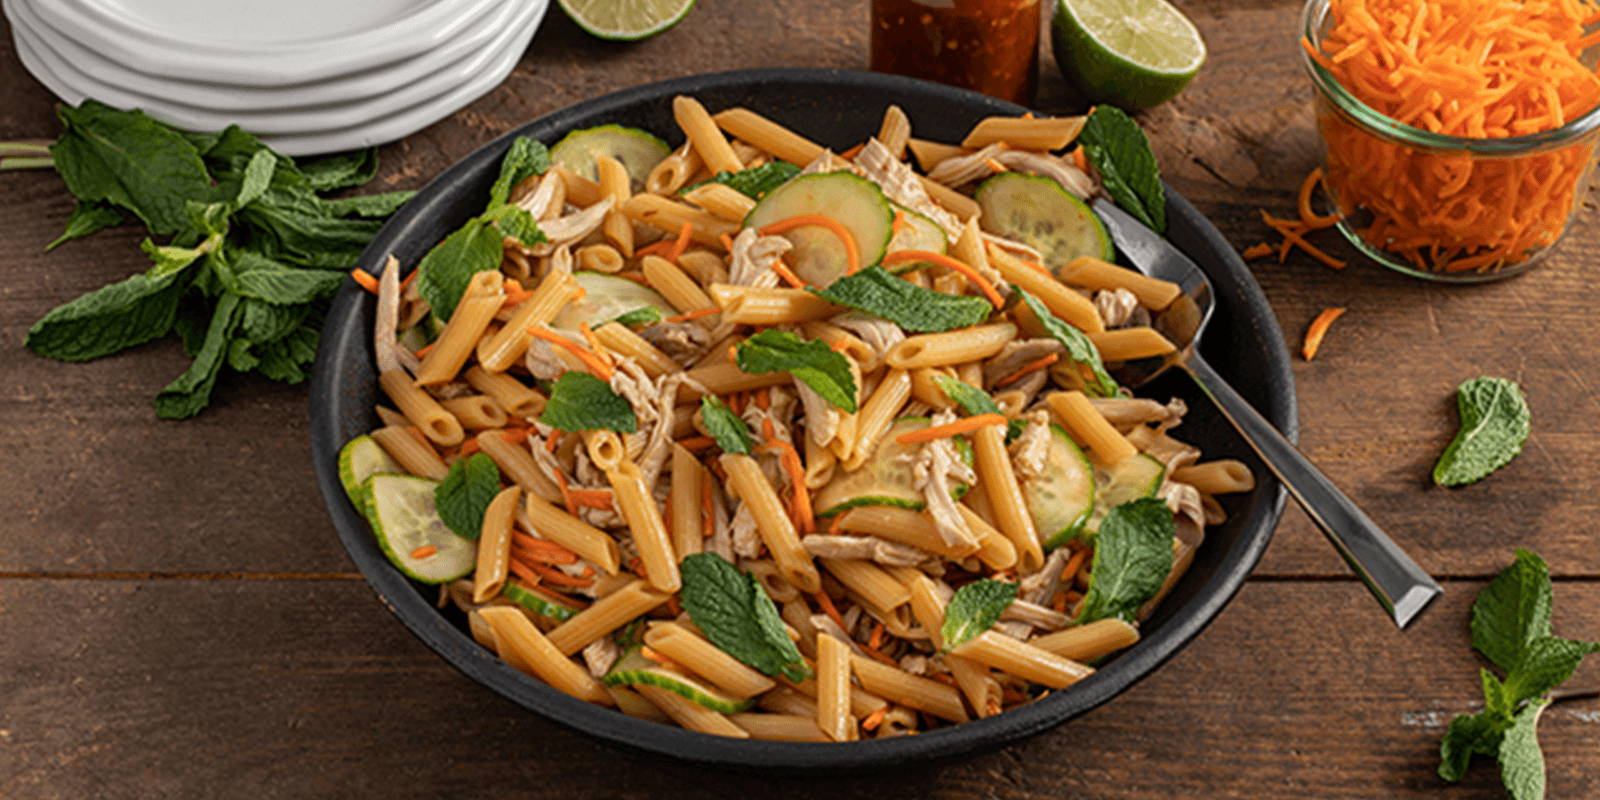 Bowl of pasta salad with cucumber, chicken, carrot, and mint.